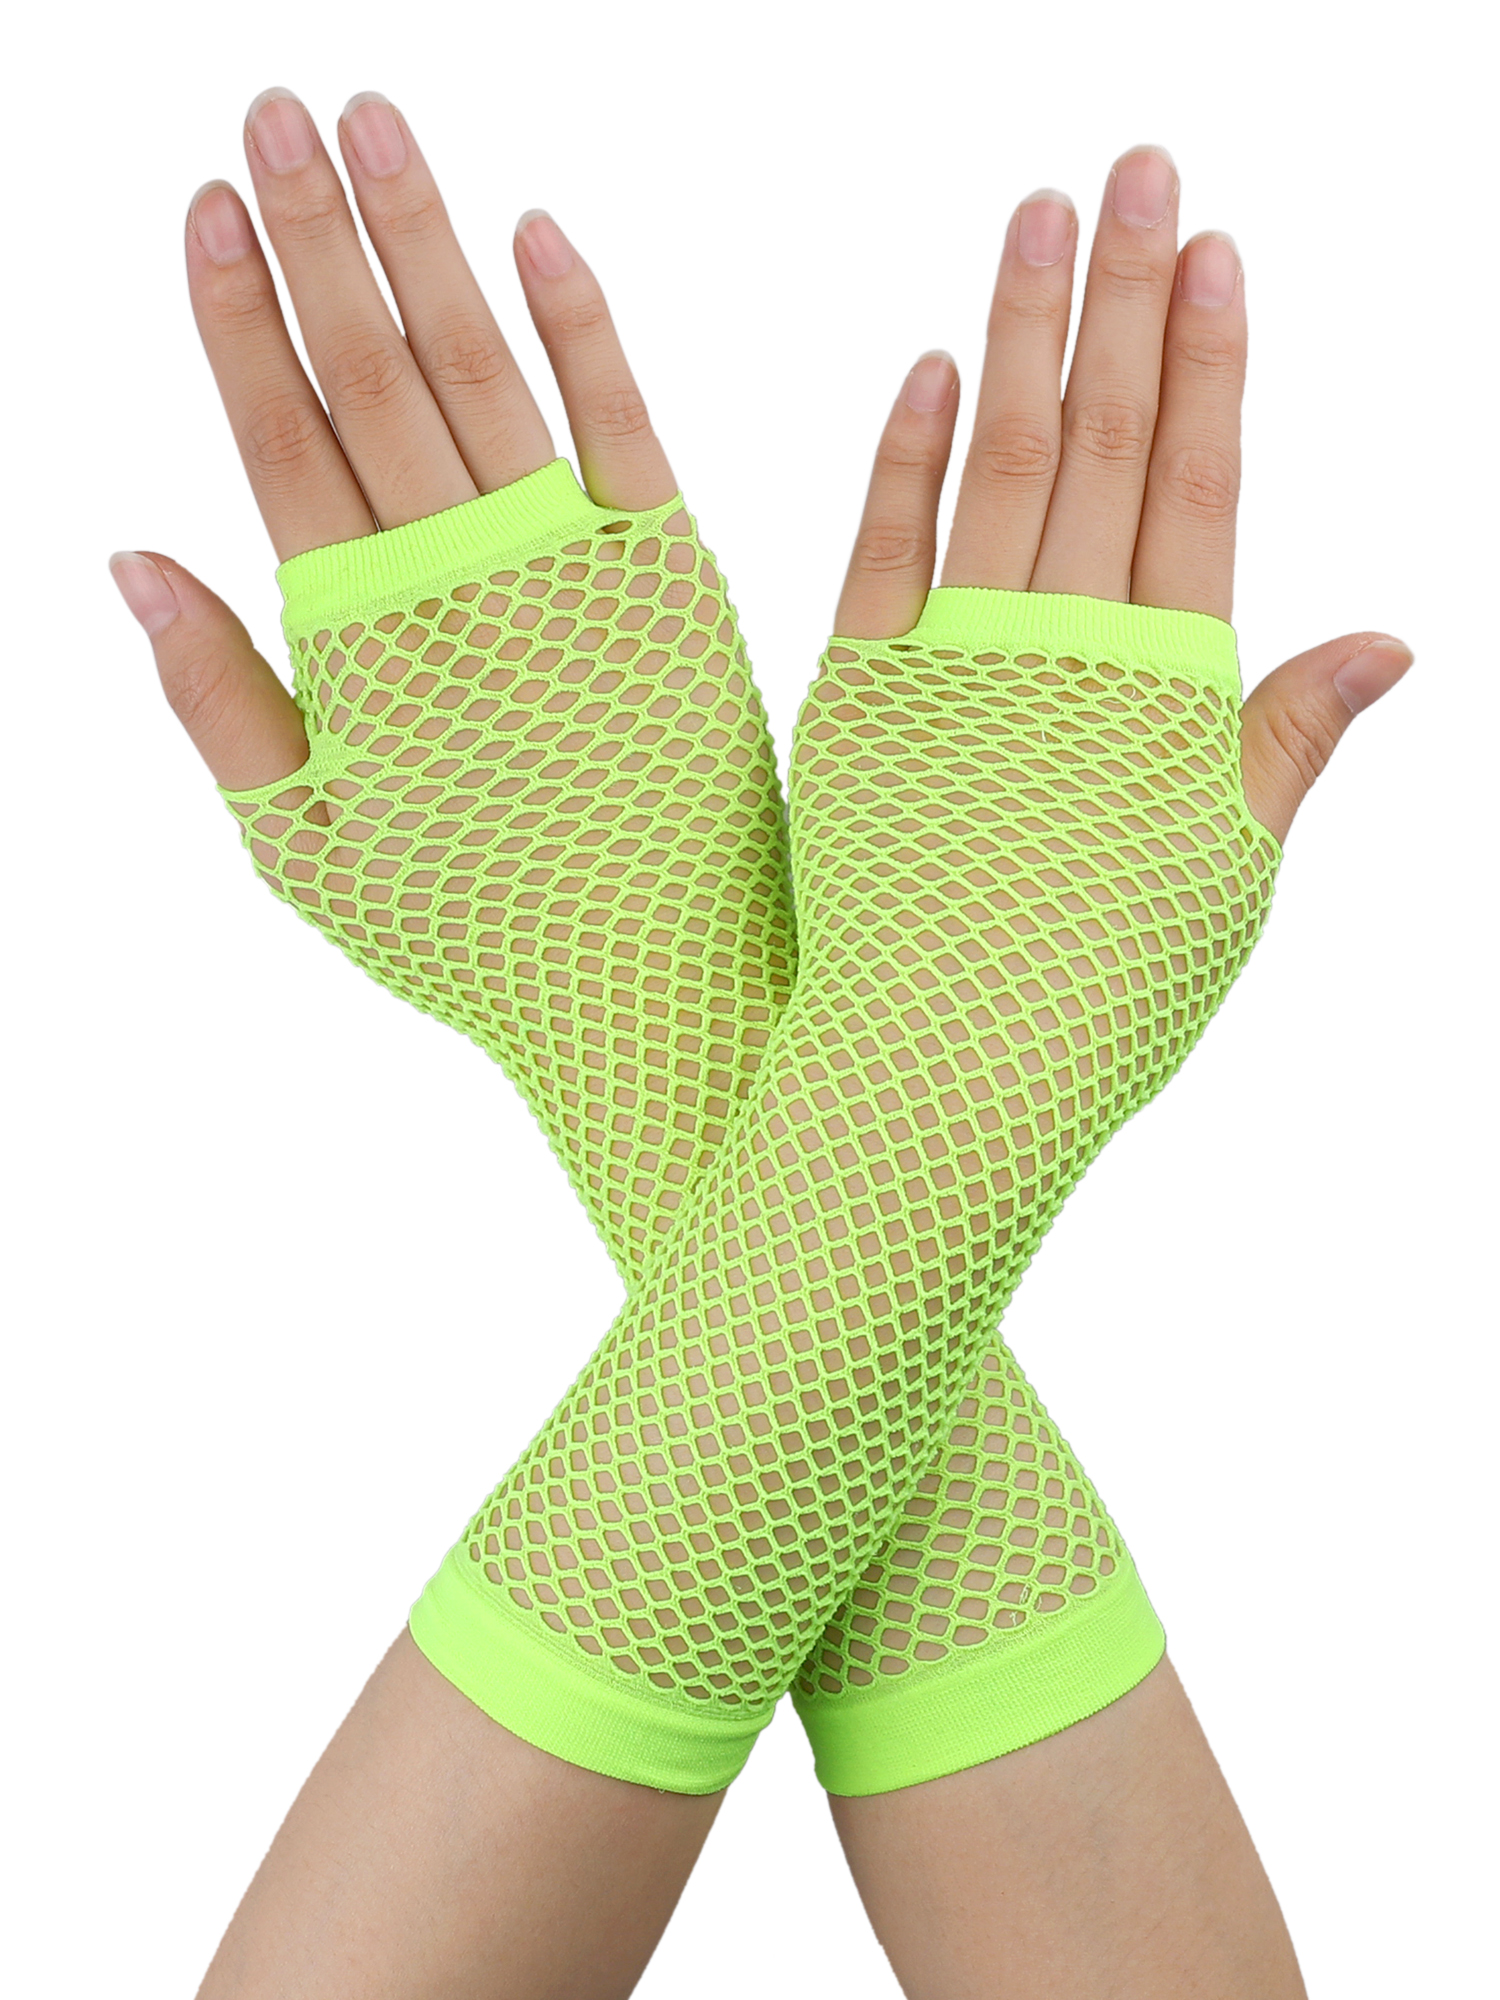 Pair Yellow Stretchy Mesh Fishnet Elbow Fingerless Goth Arm Warmers for Lady